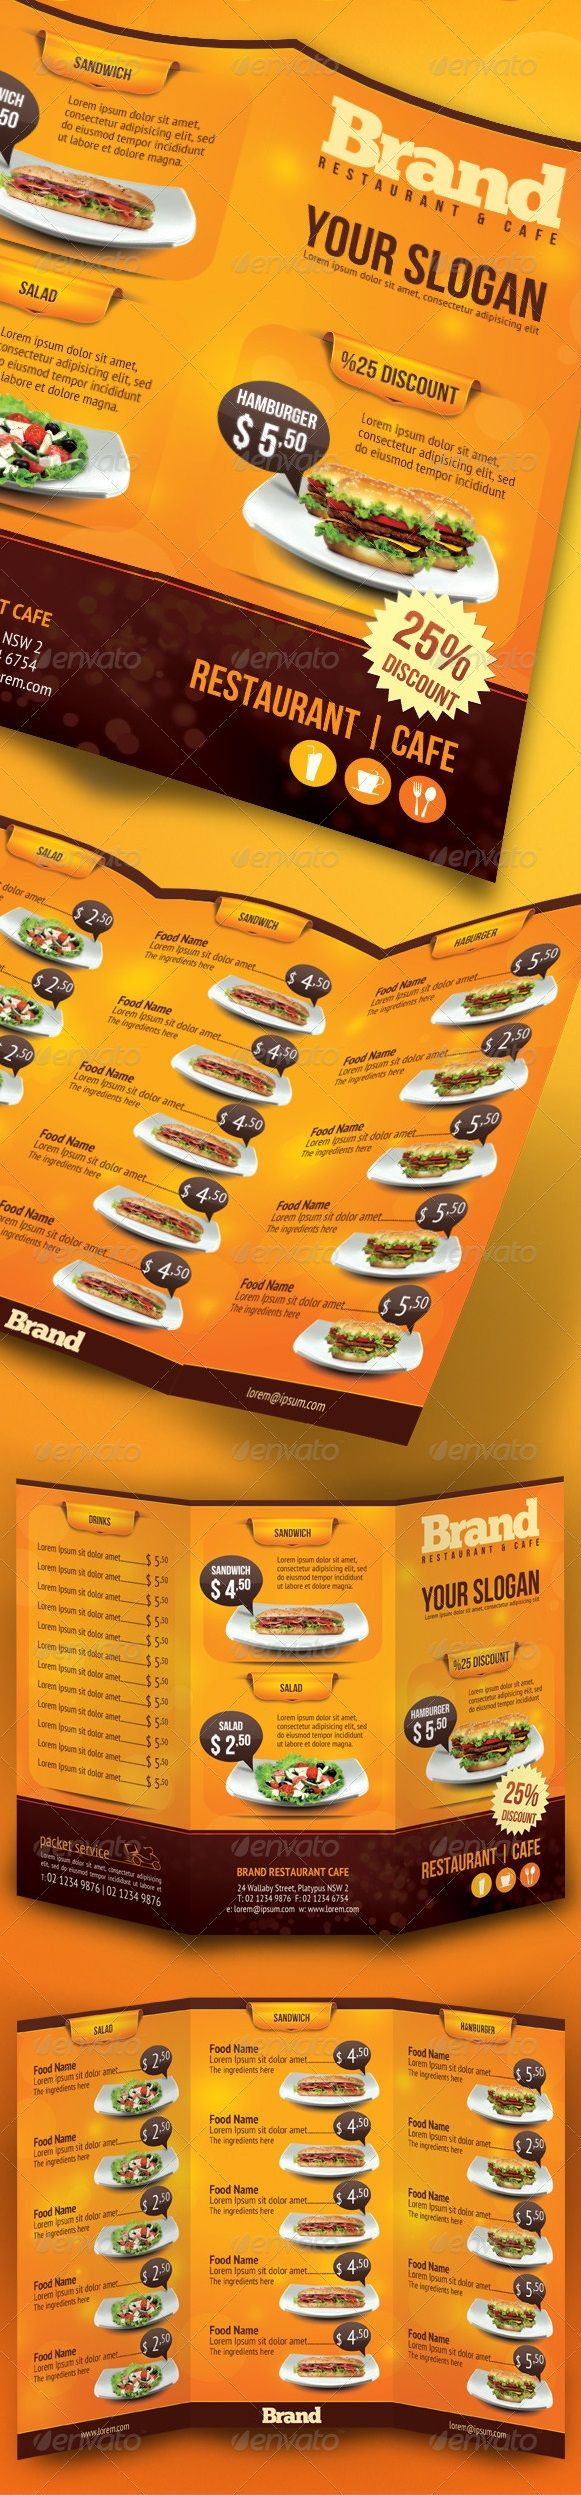 TRIFOLD RESTAURANT CAFE MENU. Get it customized as per your needs in only $22.00 http://www.devloopers.com/design/food-menu/fast-food-menu/trifold-brochure-restaurant-cafe-menu